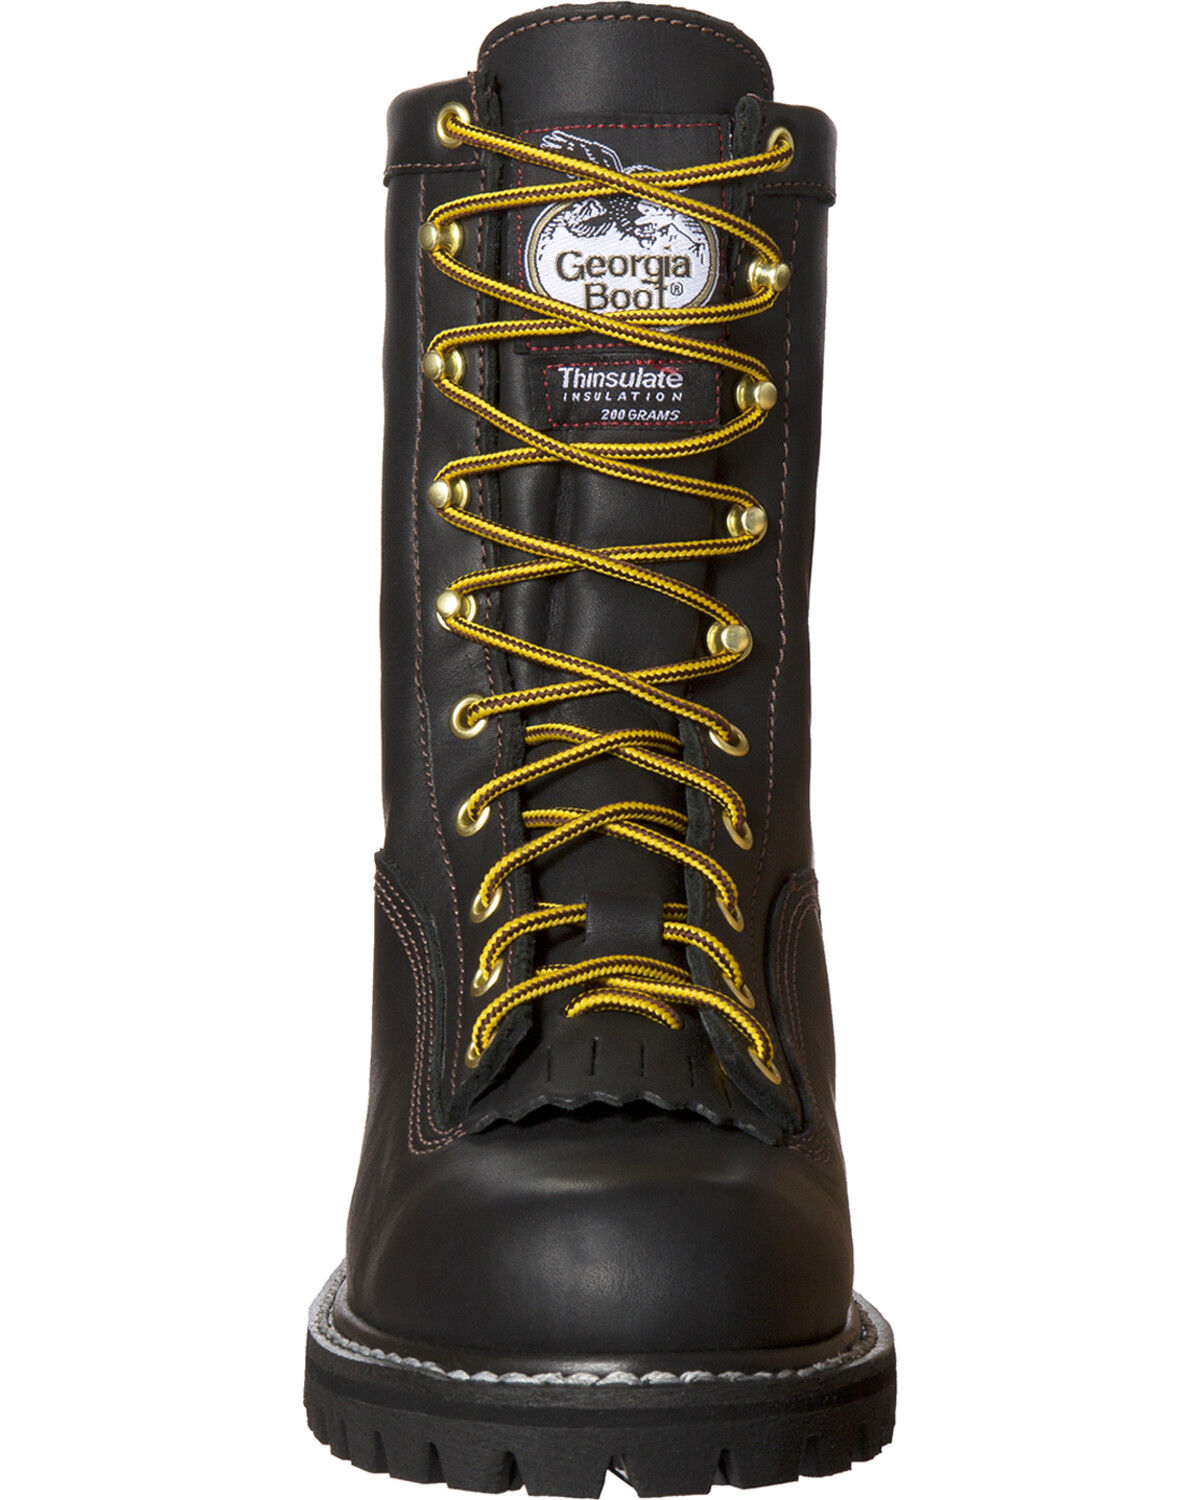 GORE-TEX Insulated Work Boots | Boot Barn